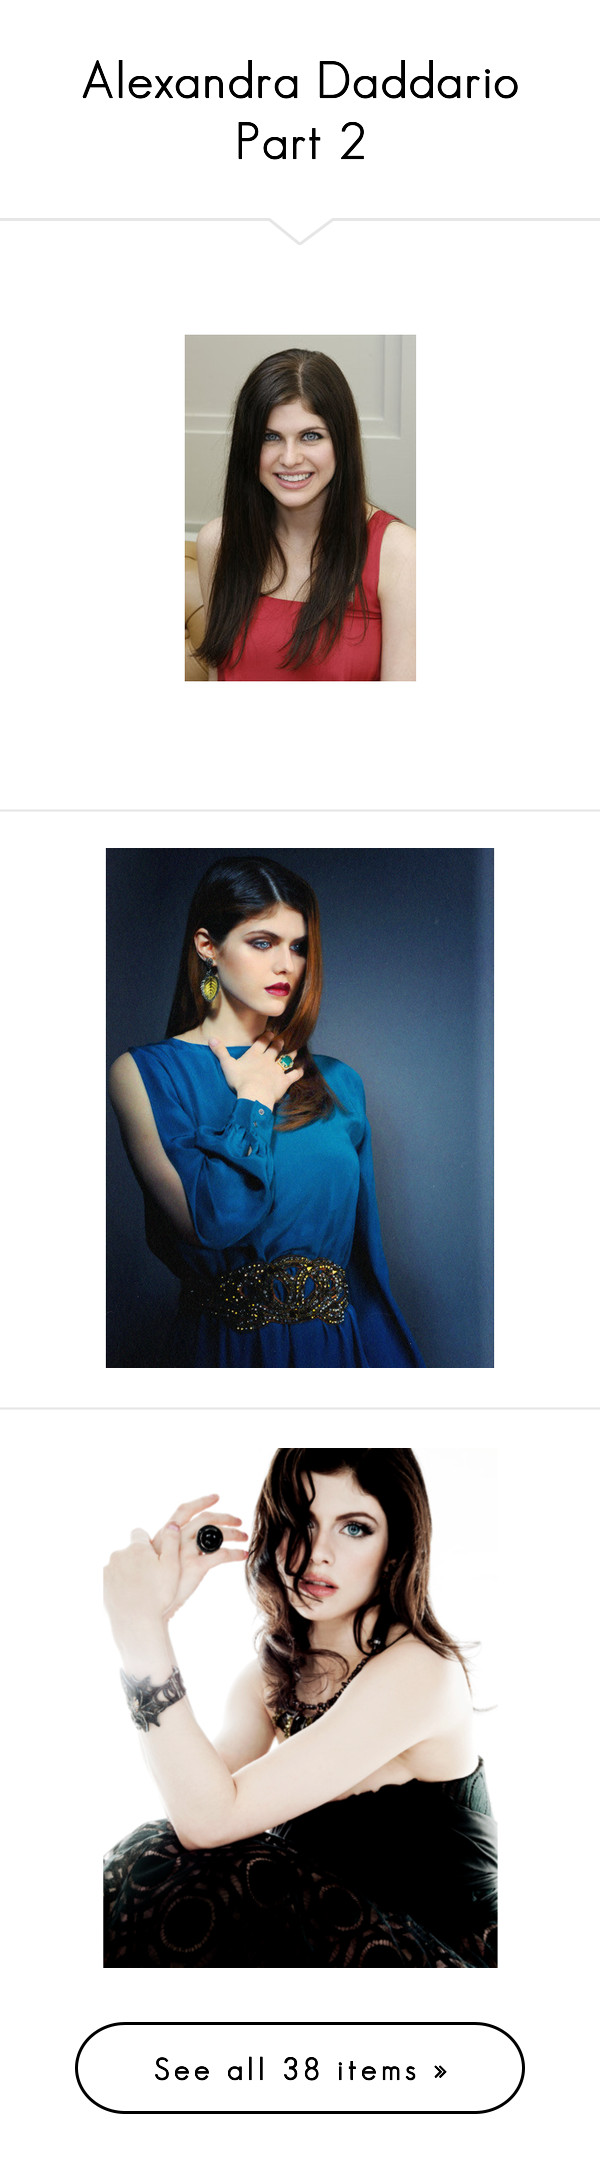 """""""Alexandra Daddario Part 2"""" by crazyaboutbooks1309 ❤ liked on Polyvore featuring alexandra daddario, people, girls, female models, models, actors, celebrities, accessories, tech accessories and women"""